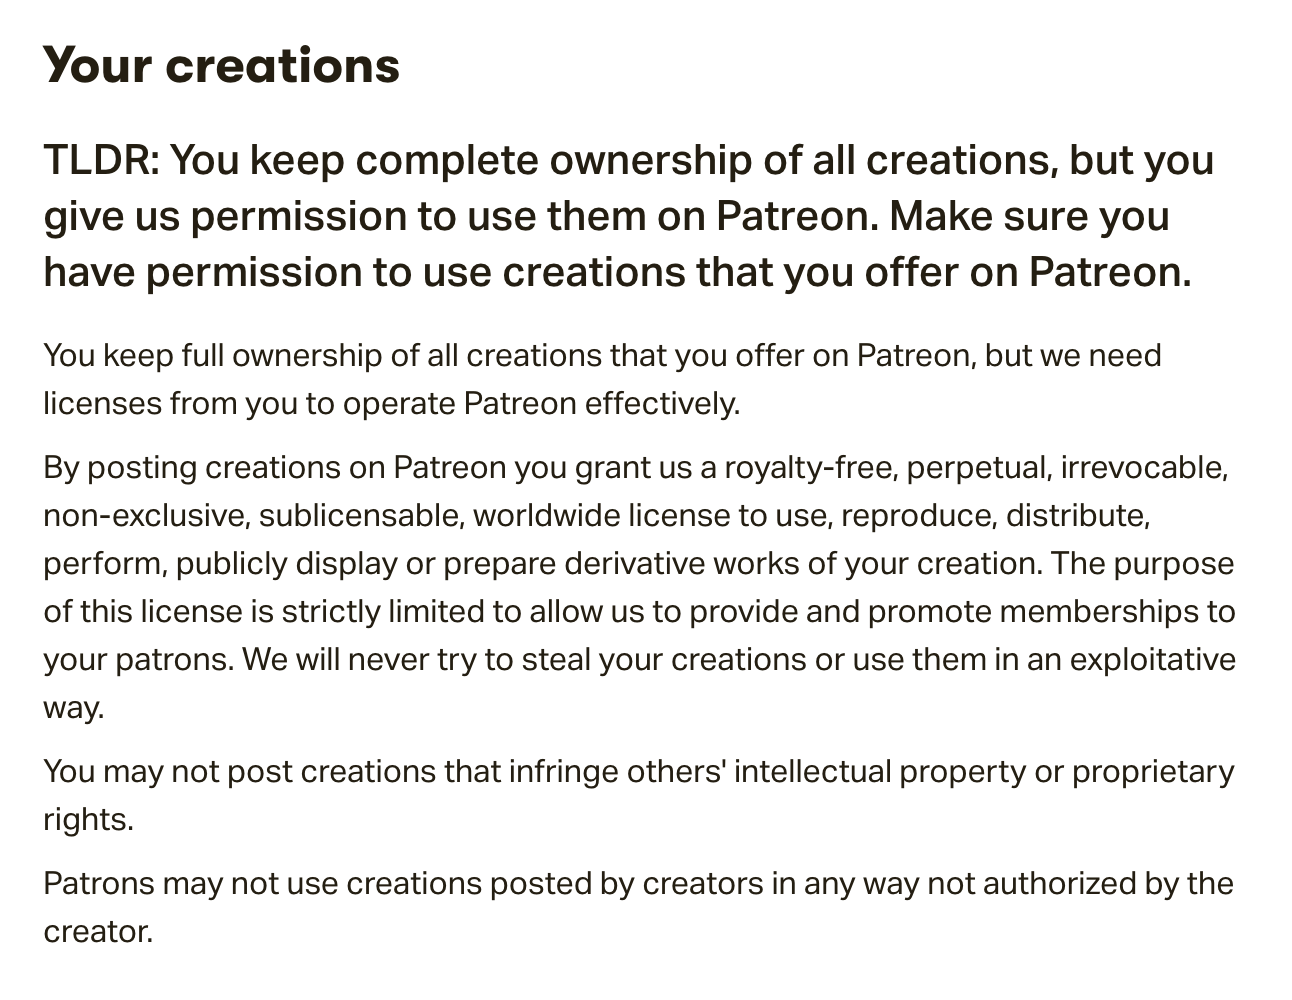 Terms Of Use >> I Grant Patreon A License To Do What With My Creations